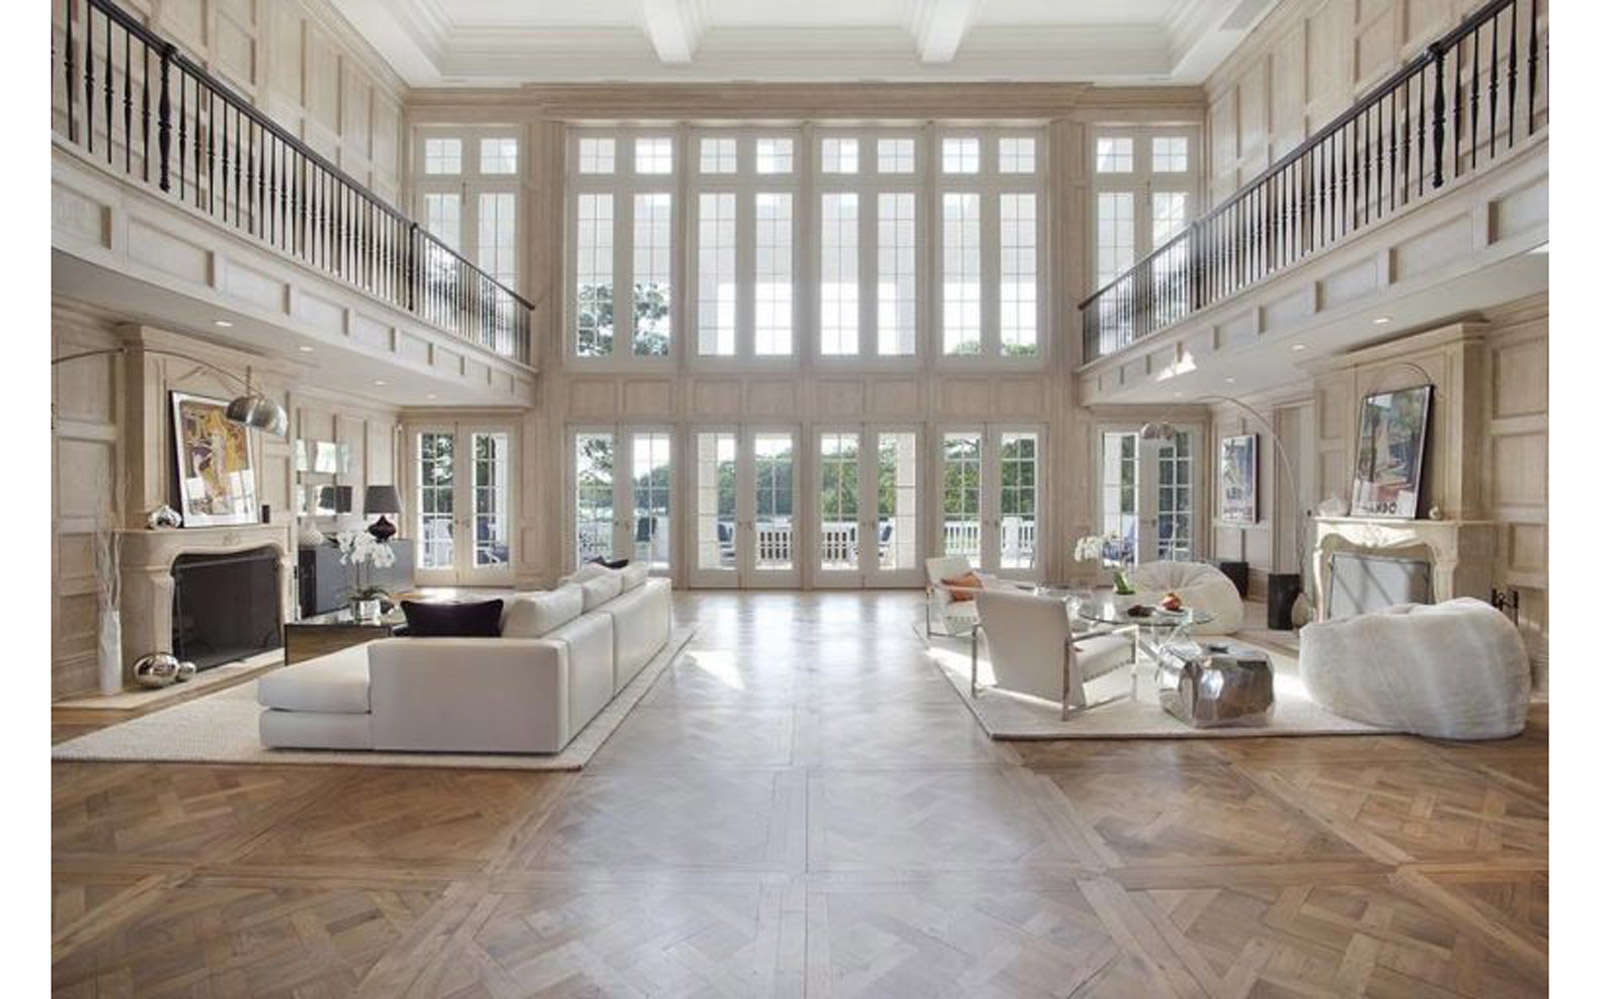 Main room in Beyoncé and JAY-Z's Hampton house